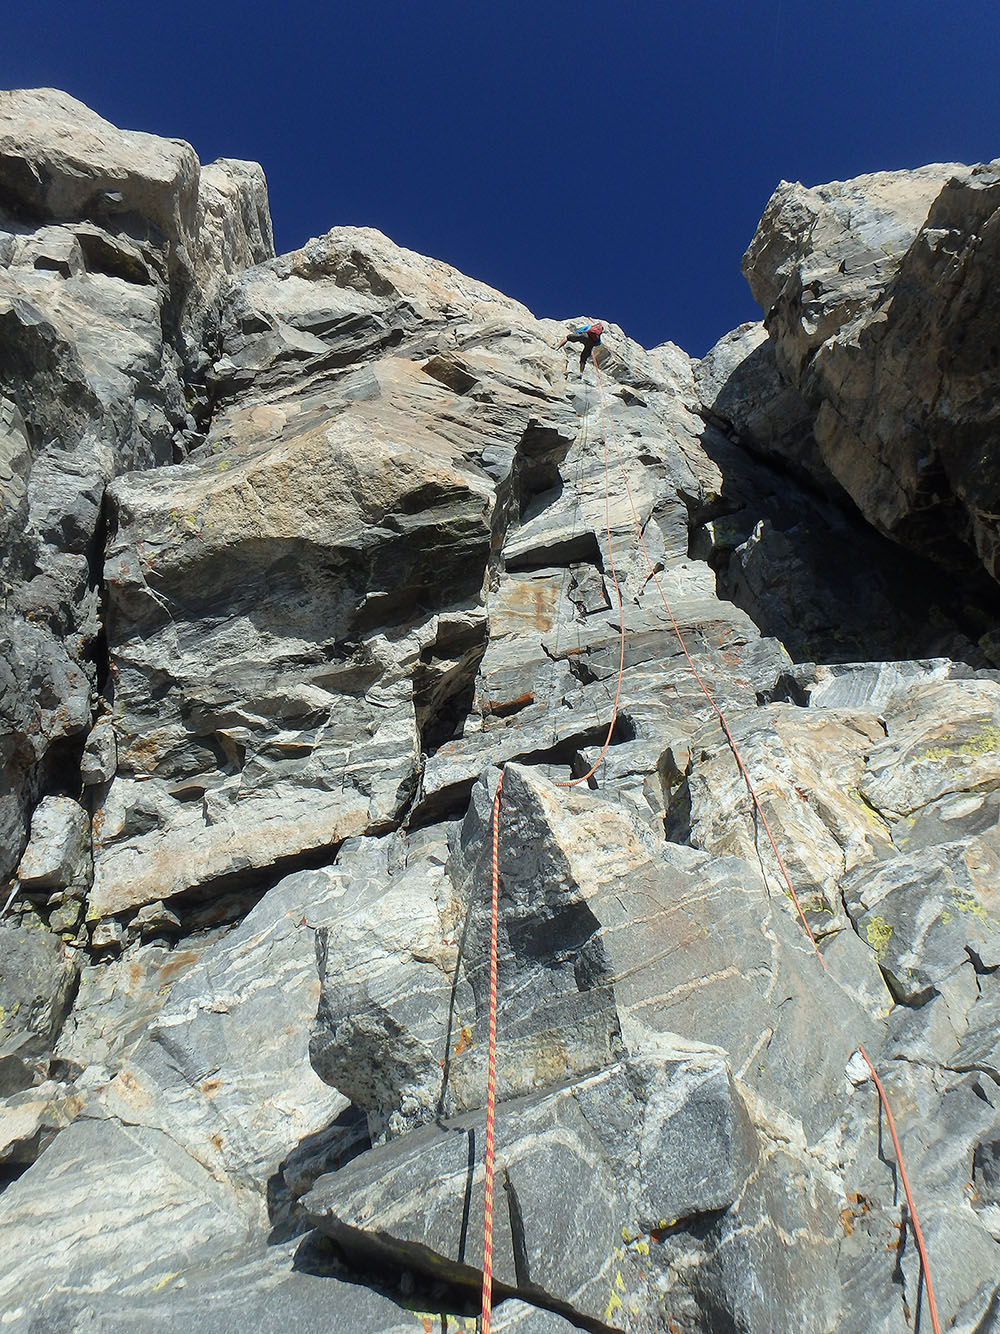 Chris on the 2nd rappel on the Grand Teton in Wyoming